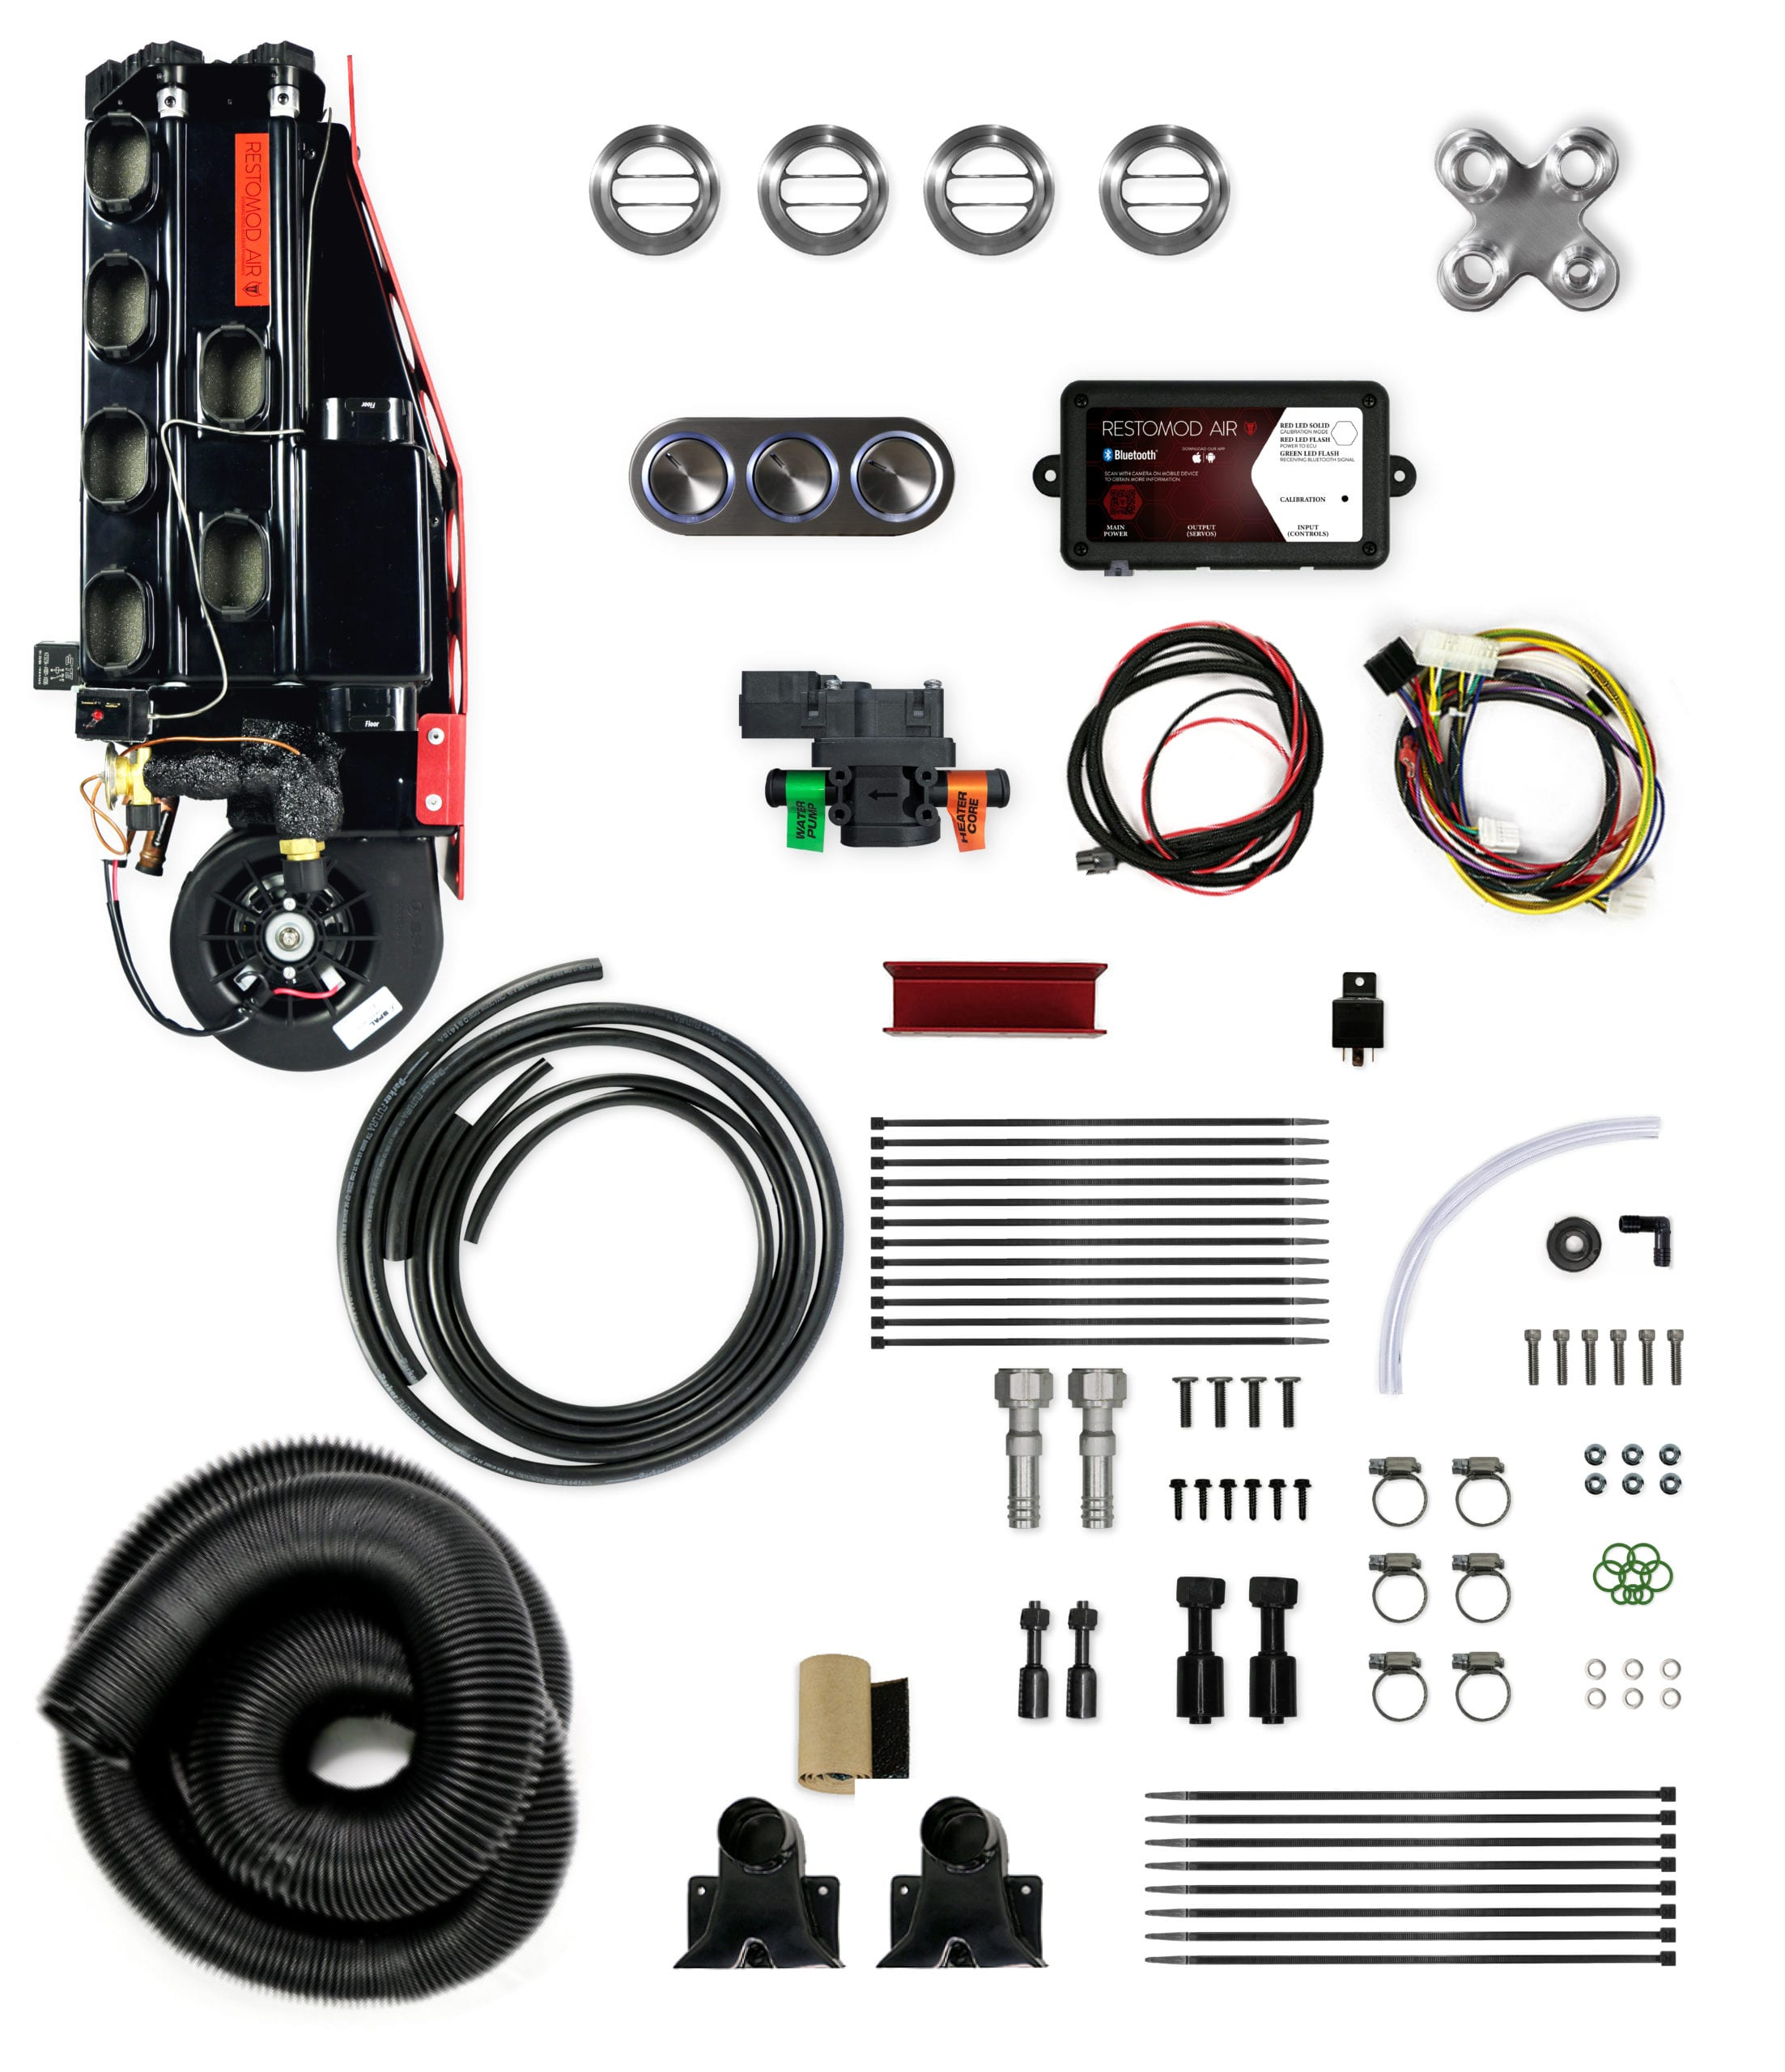 HAYMAKER S FEATURED KIT 03 19 20 01